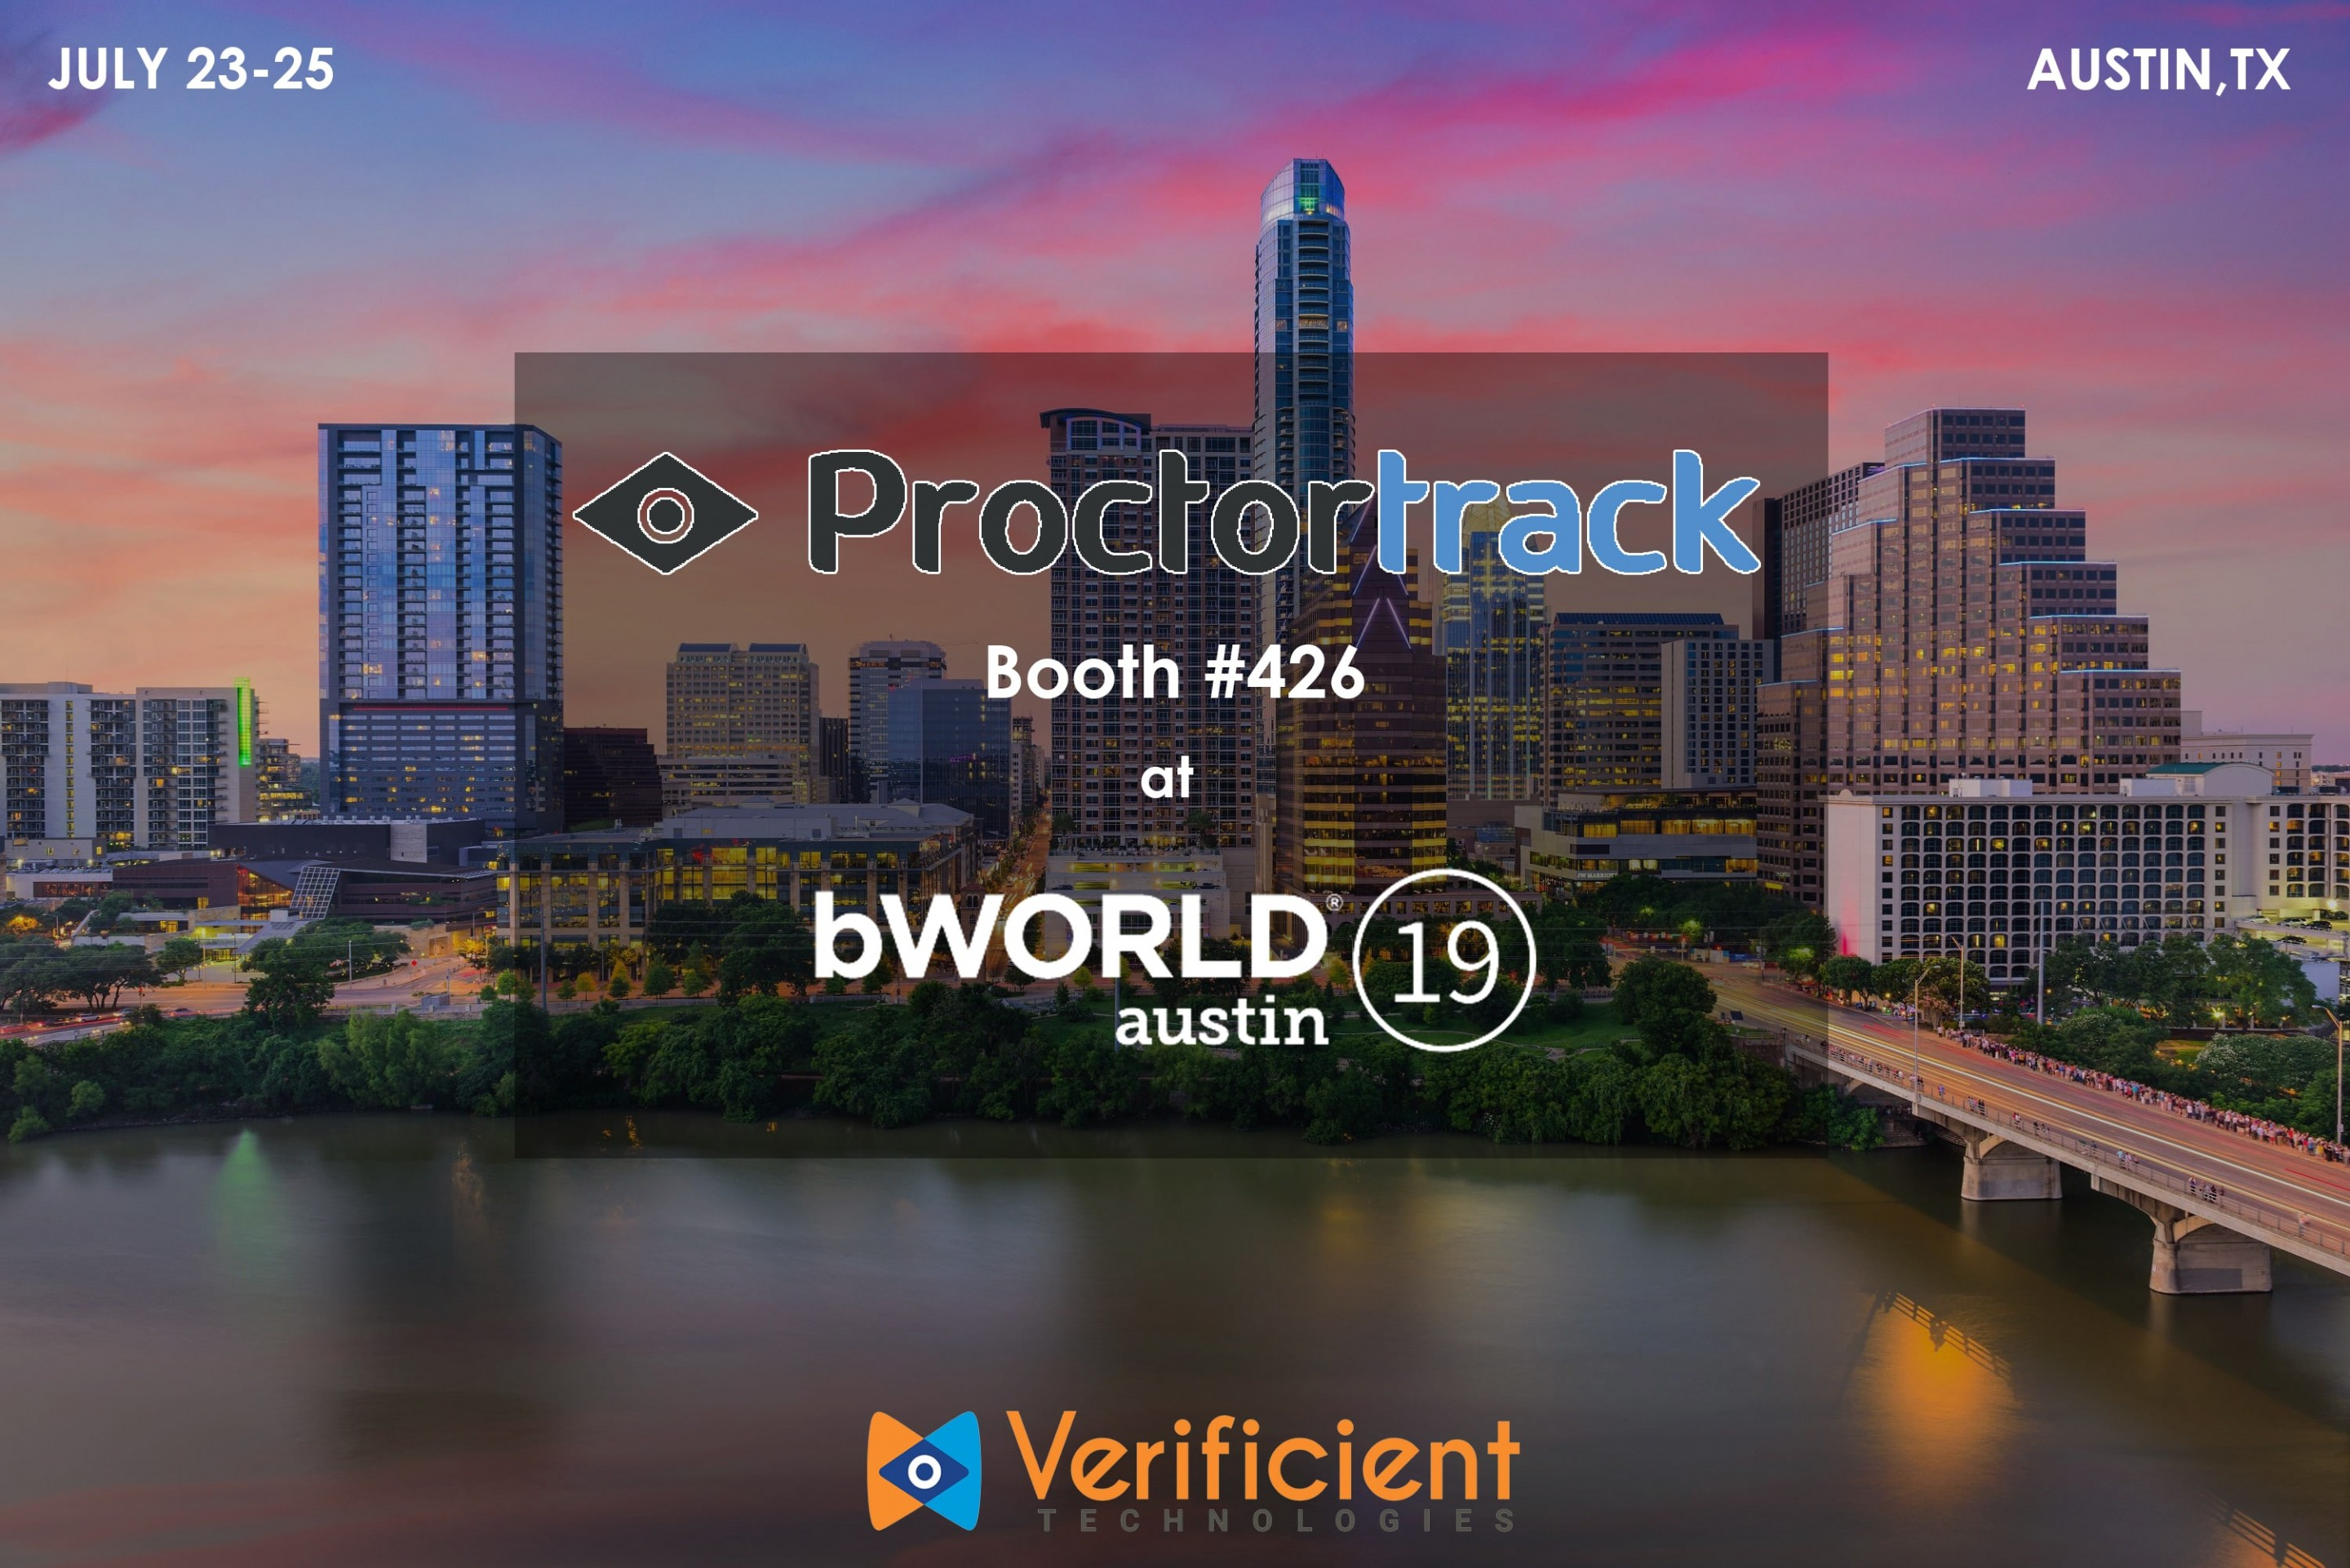 Proctortrack attends BbWORLD 2019